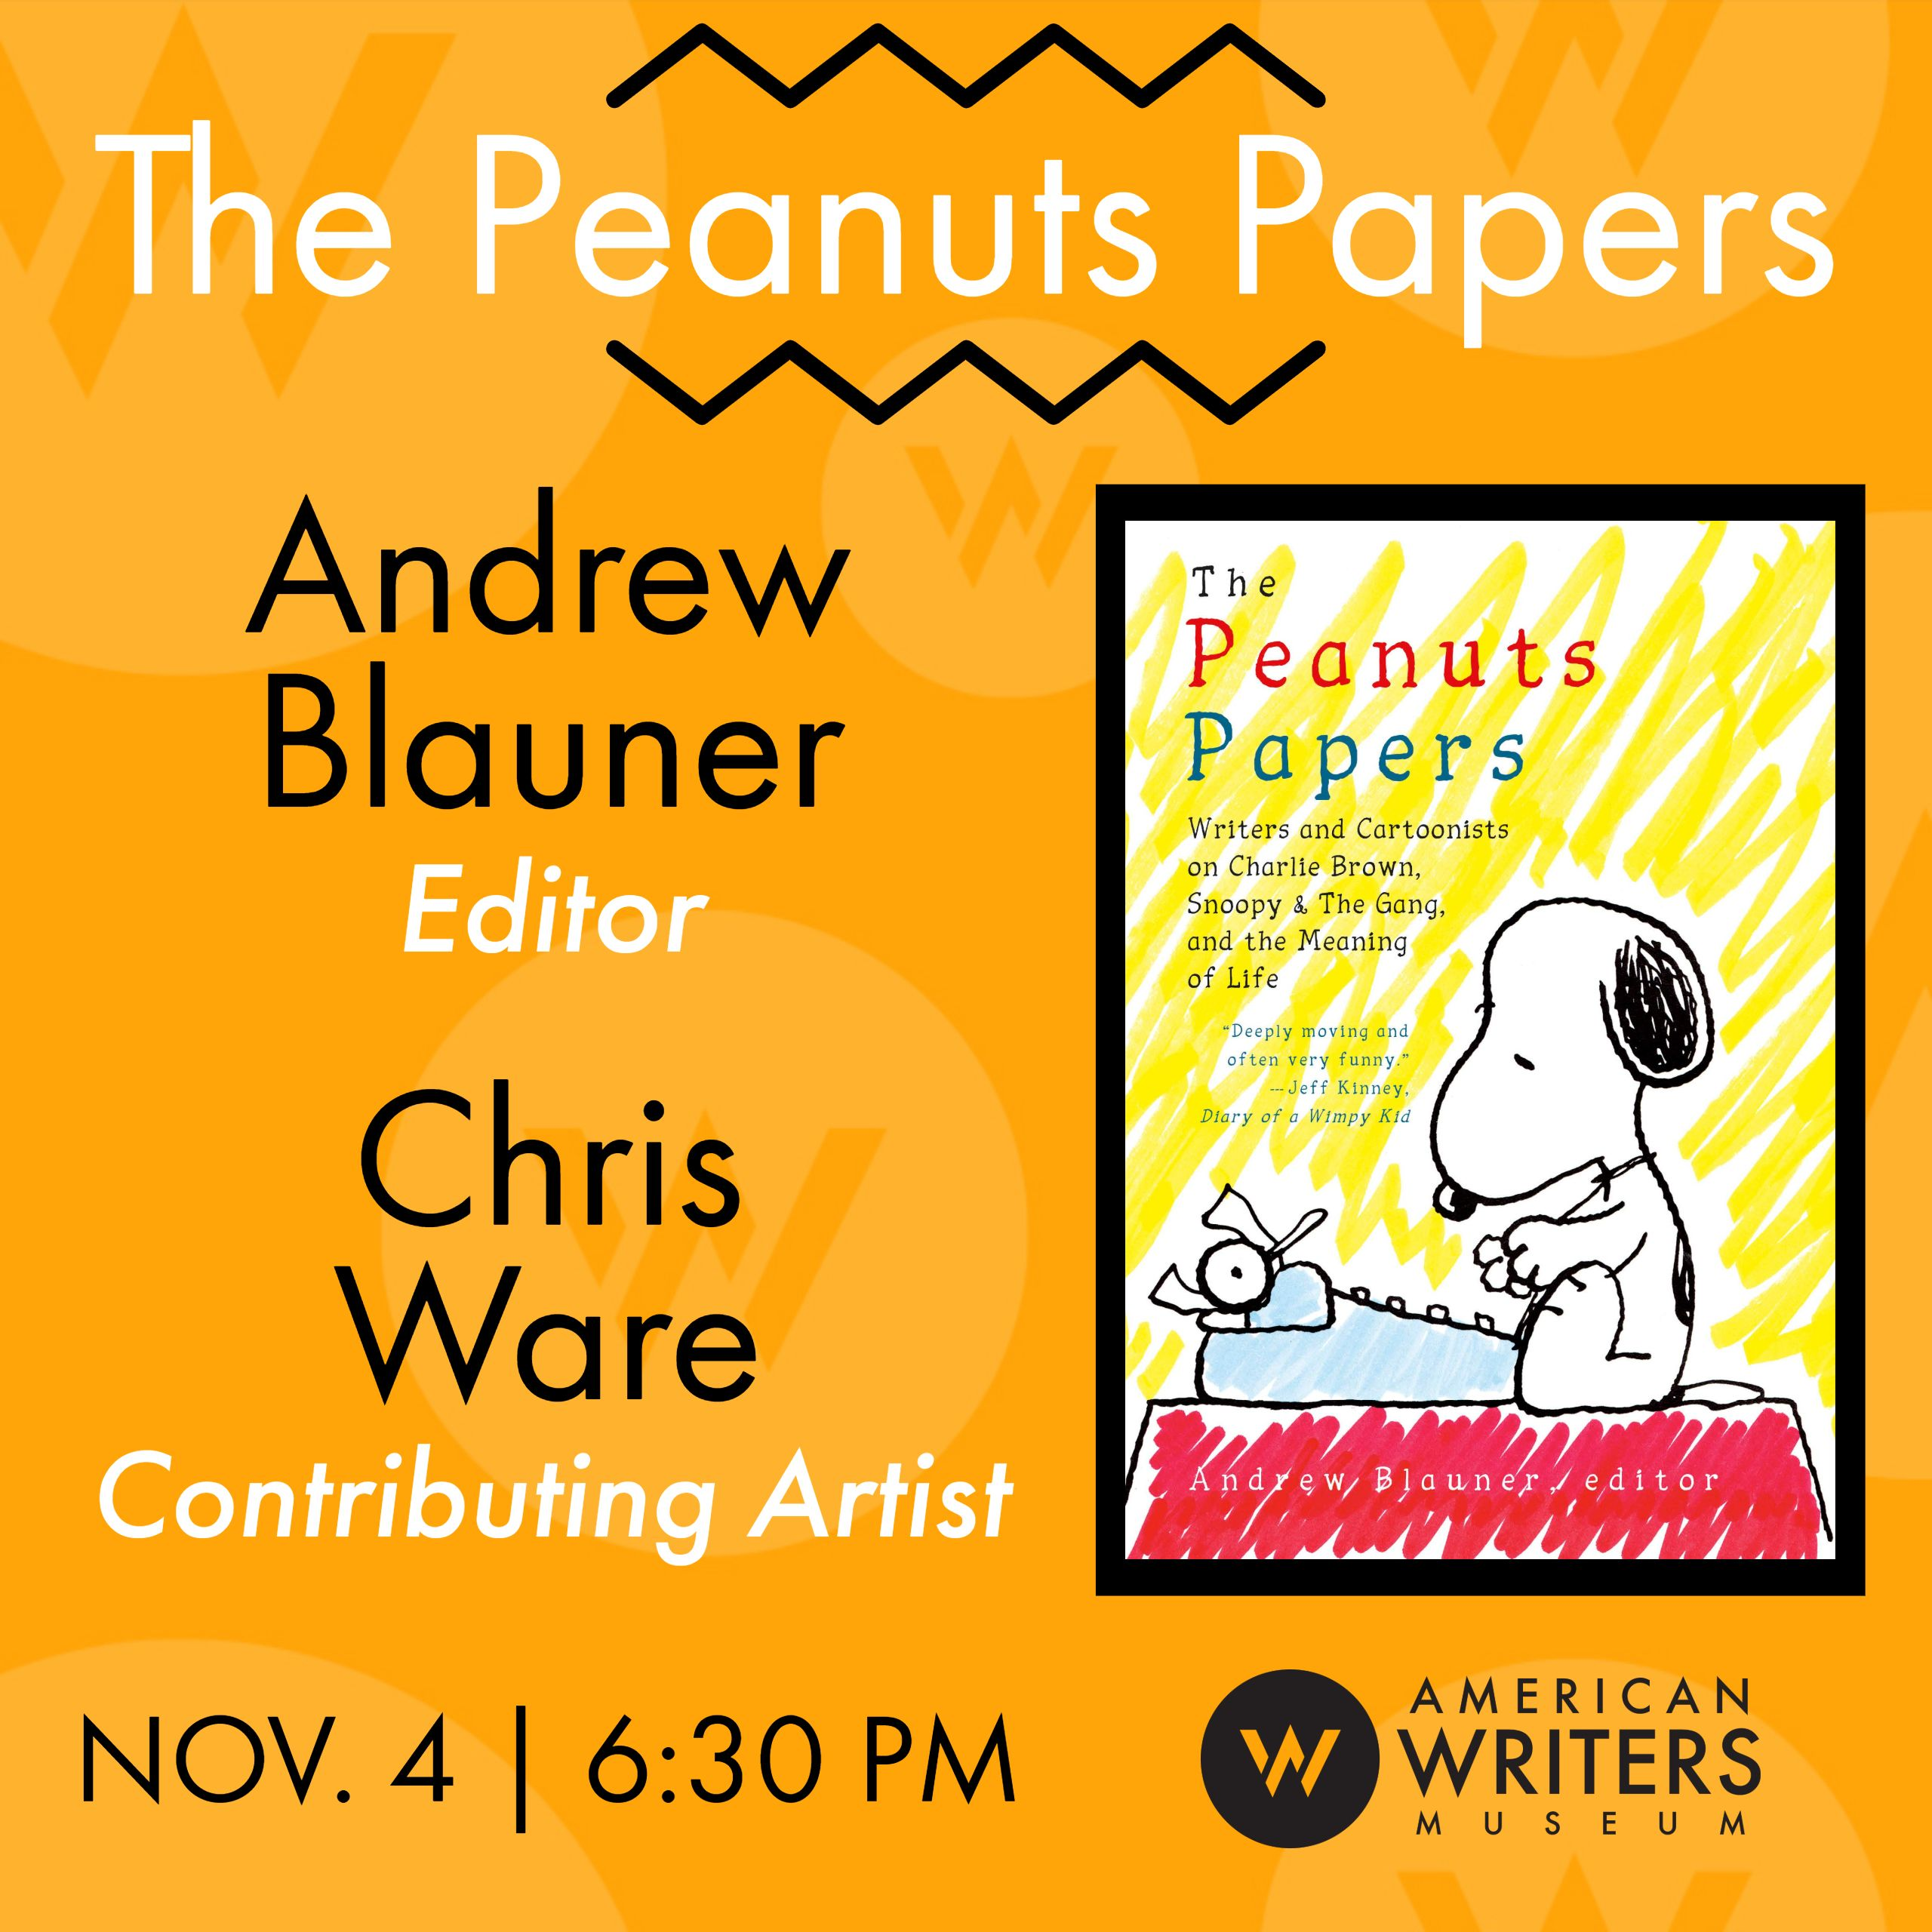 Editor Andrew Blauner and contributing artist Chris Ware present the anthology The Peanuts Papers at the American Writers Museum on November 4